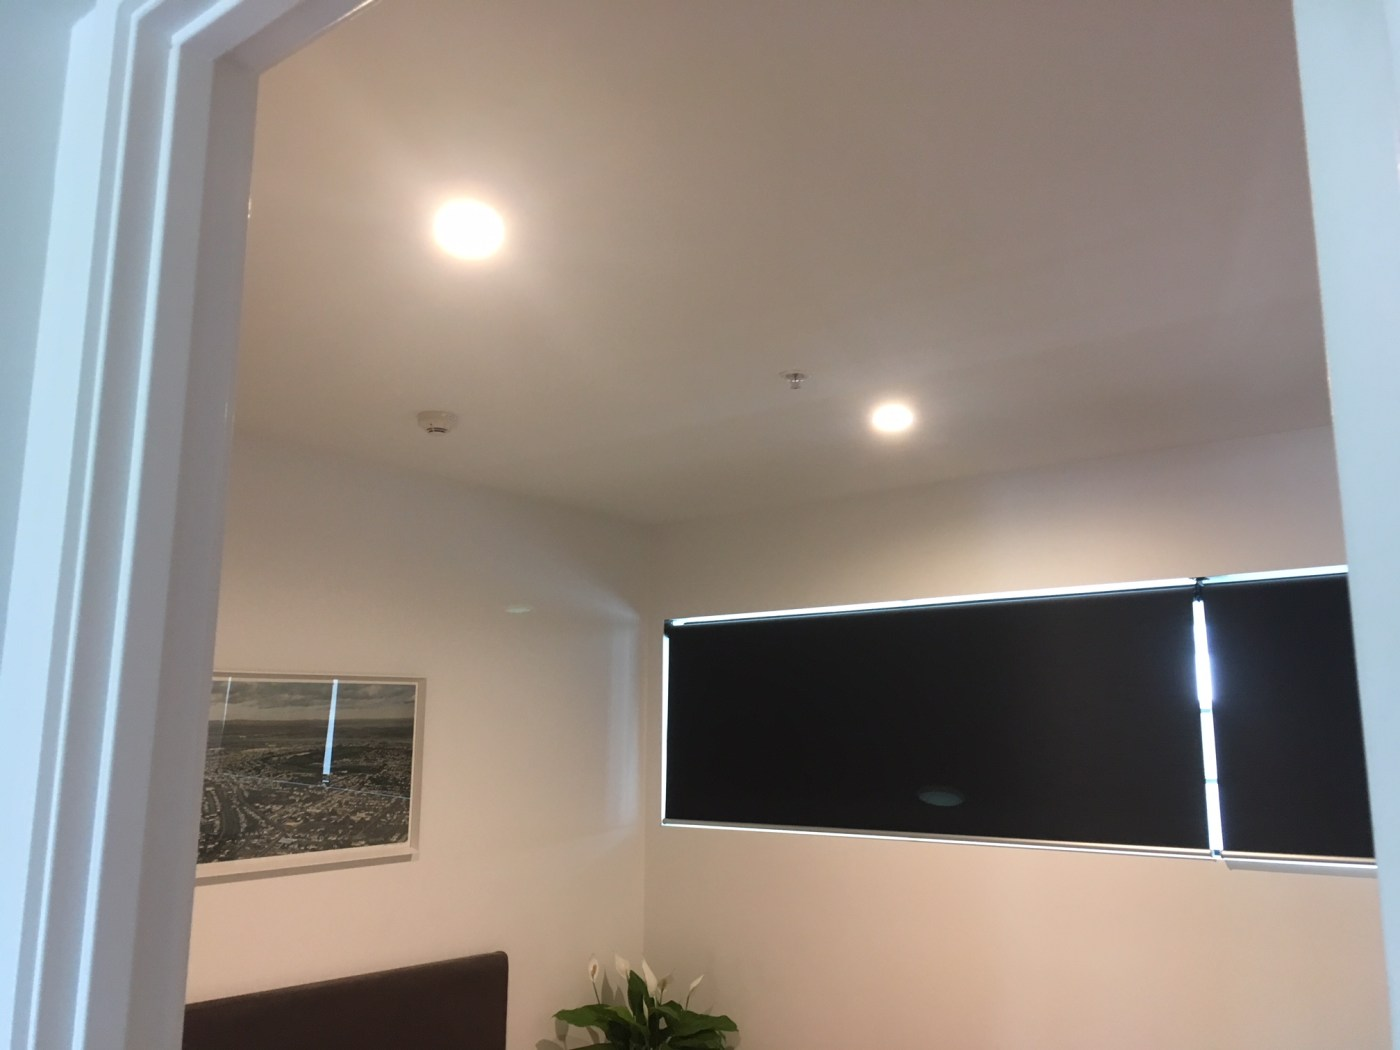 Bedroom Ceiling Lights Nz Two Bedroom Apartment Halogen Lights Upgrade To Led